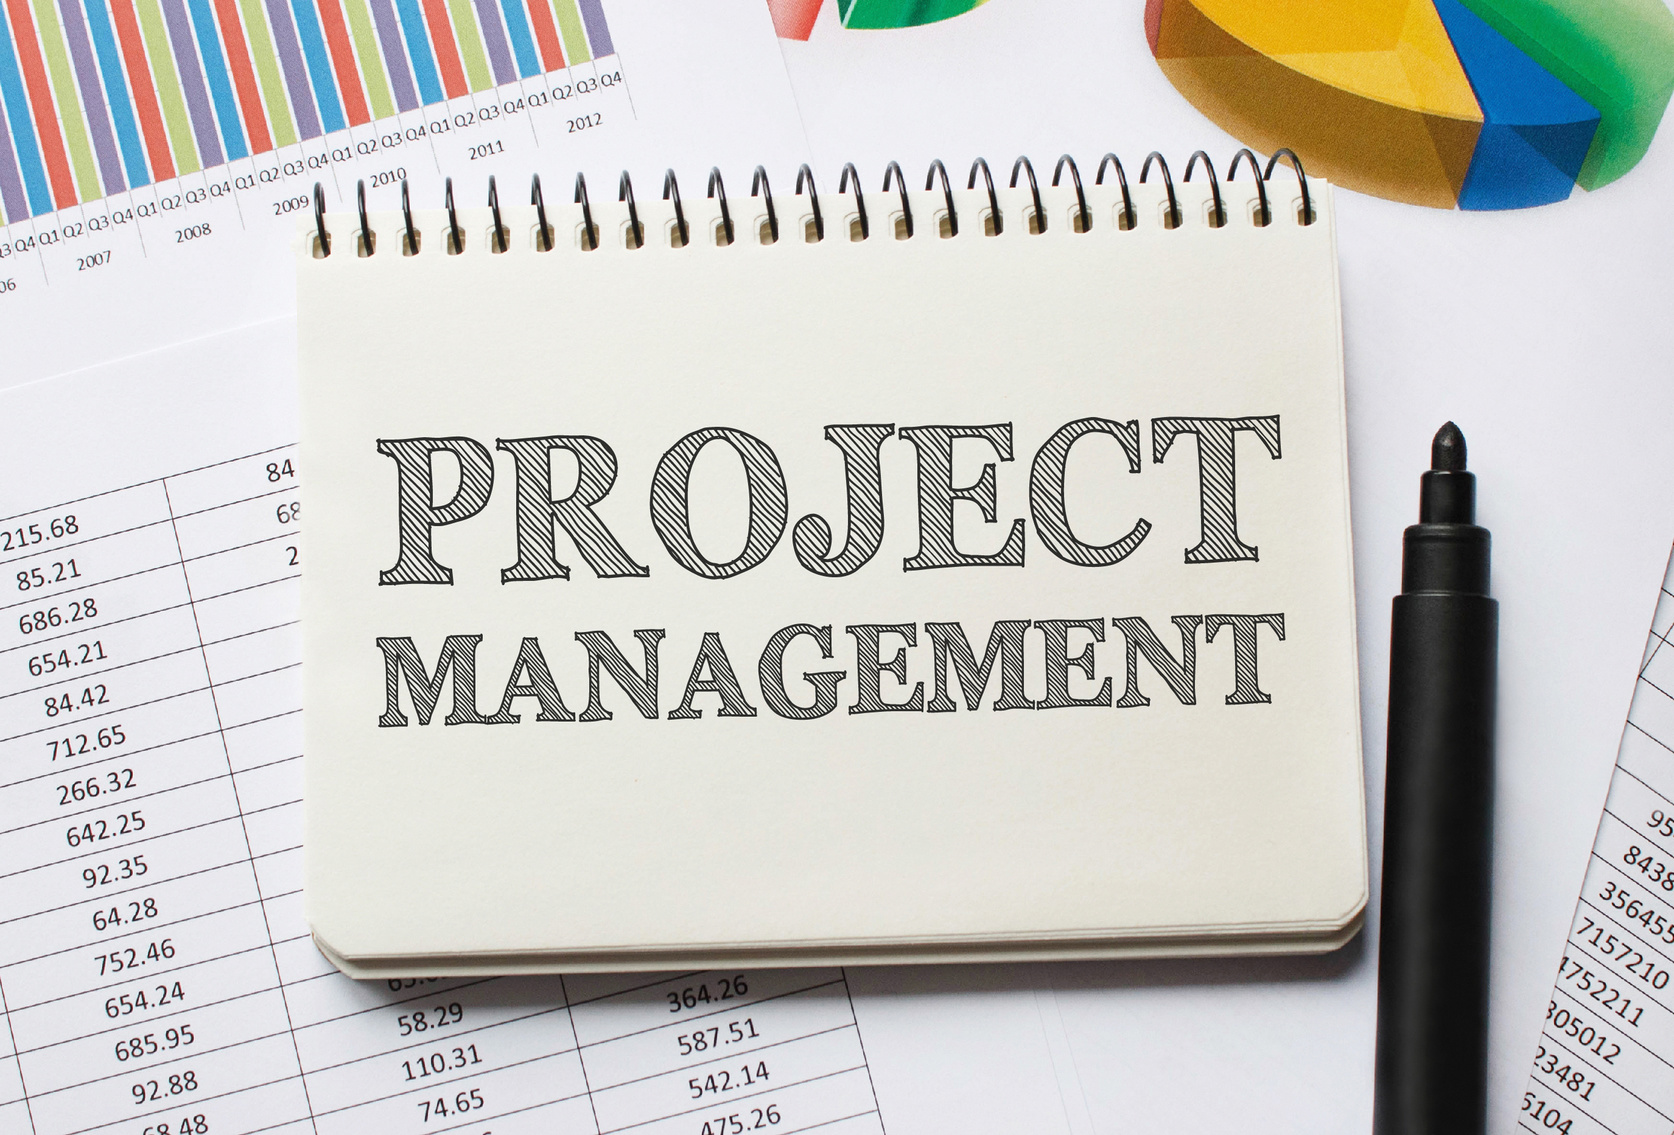 project management education Associate project manager, assistant project manager, new product development manager, project engineer, construction project manager, site manager bachelor's degree in project management one way to prepare for a career as a project manager is to complete a bachelor's degree program in project management or organizational management.